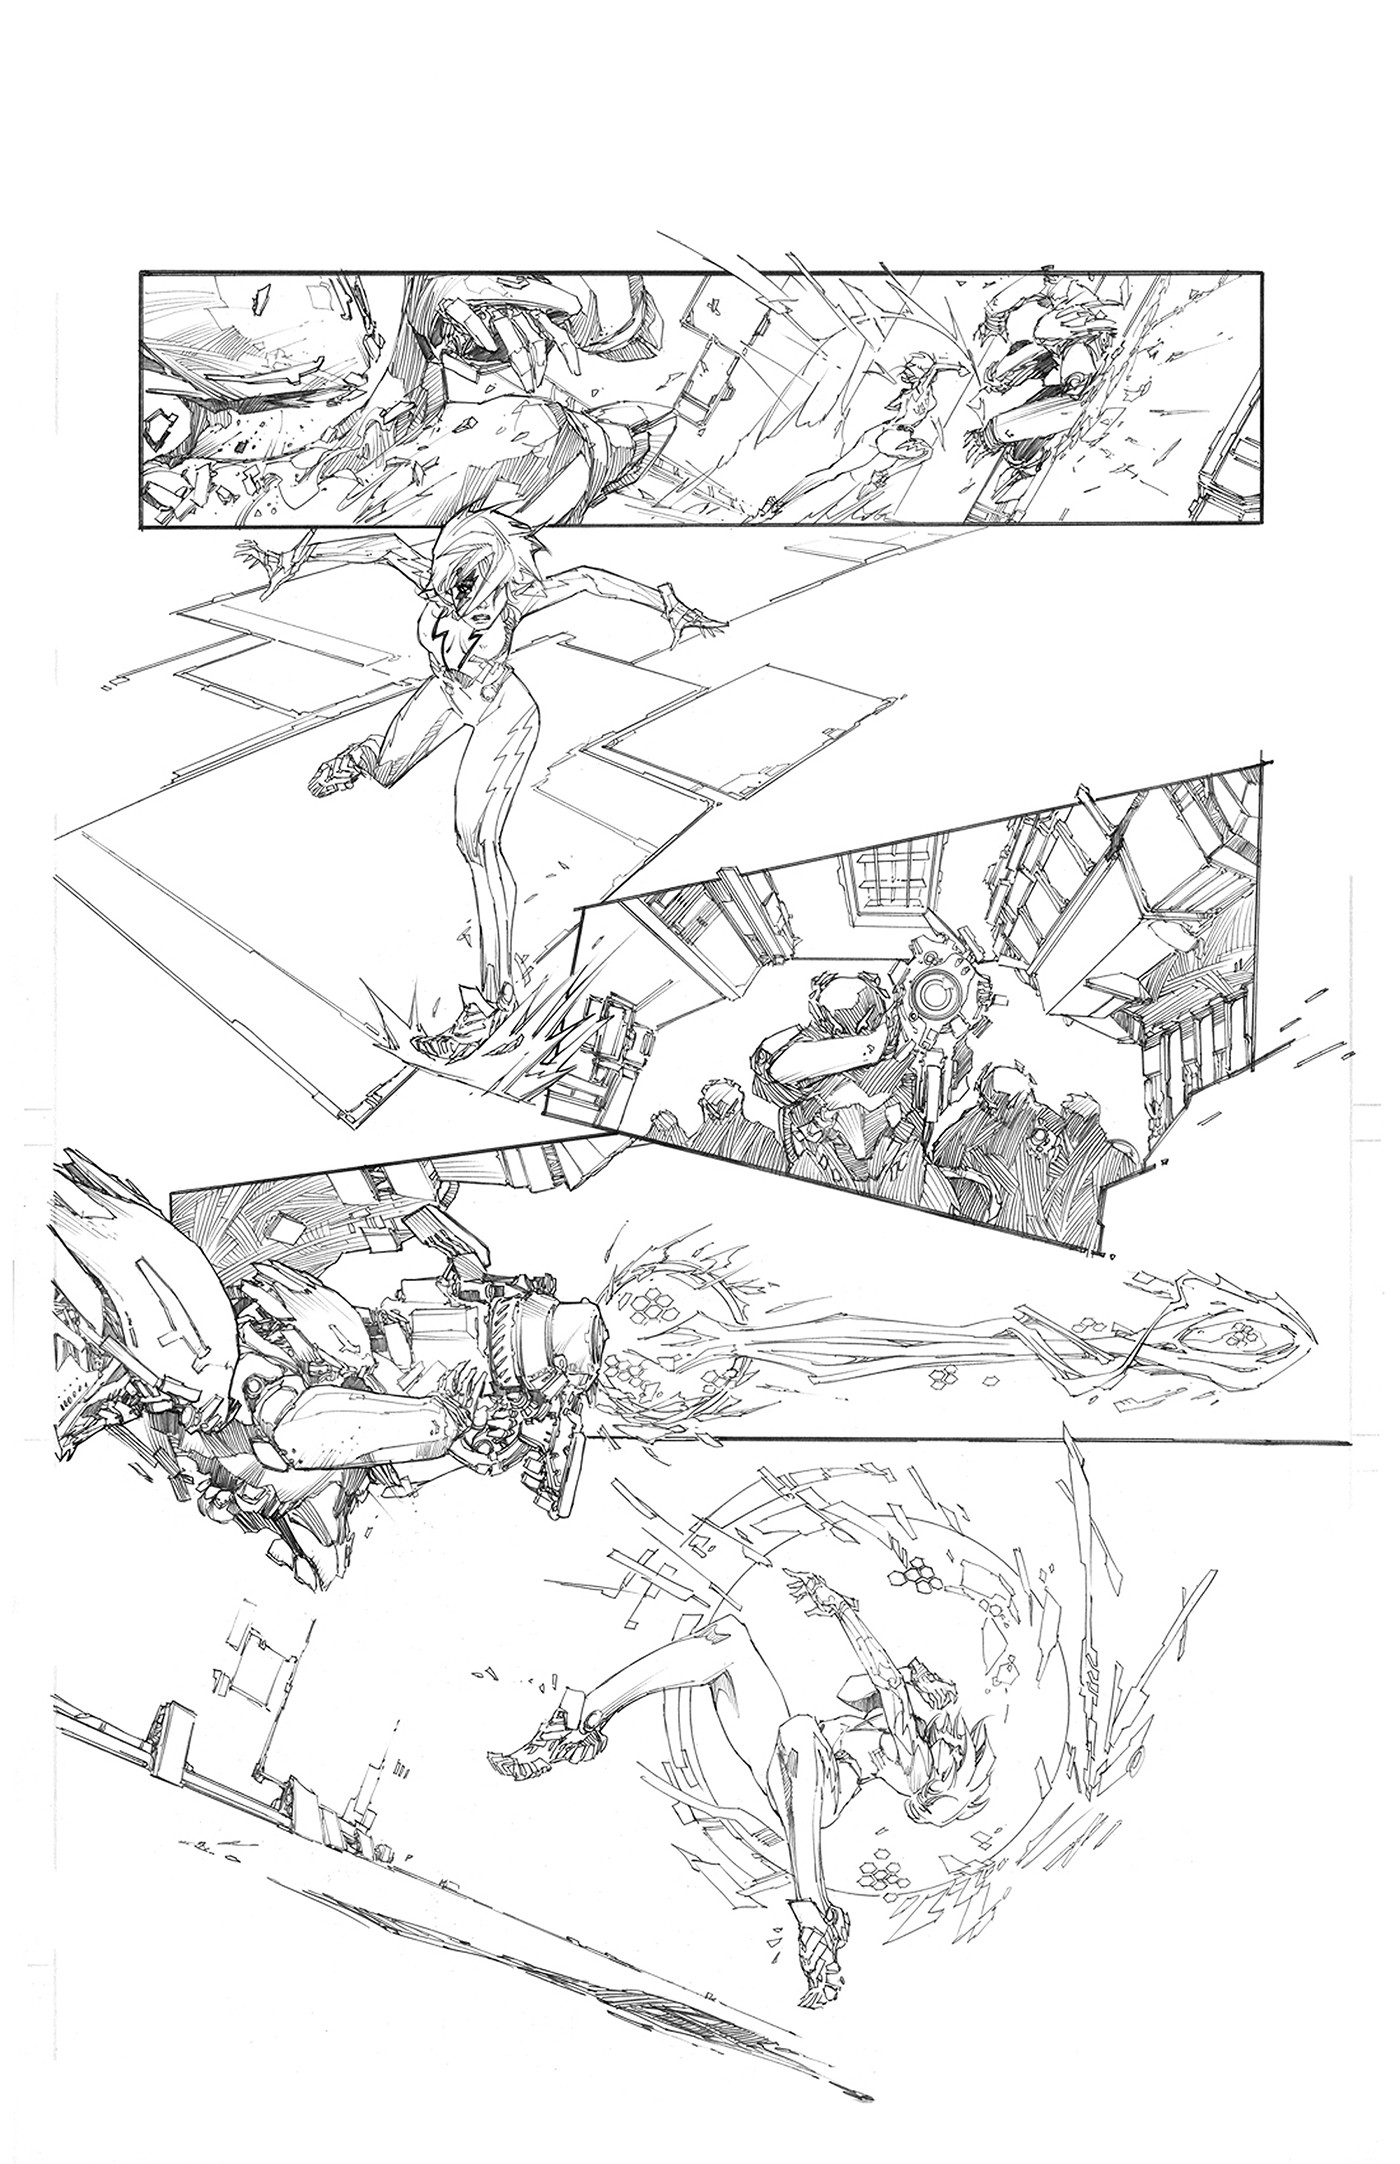 Matt james velocity issue1 page4 kenrocafort copy